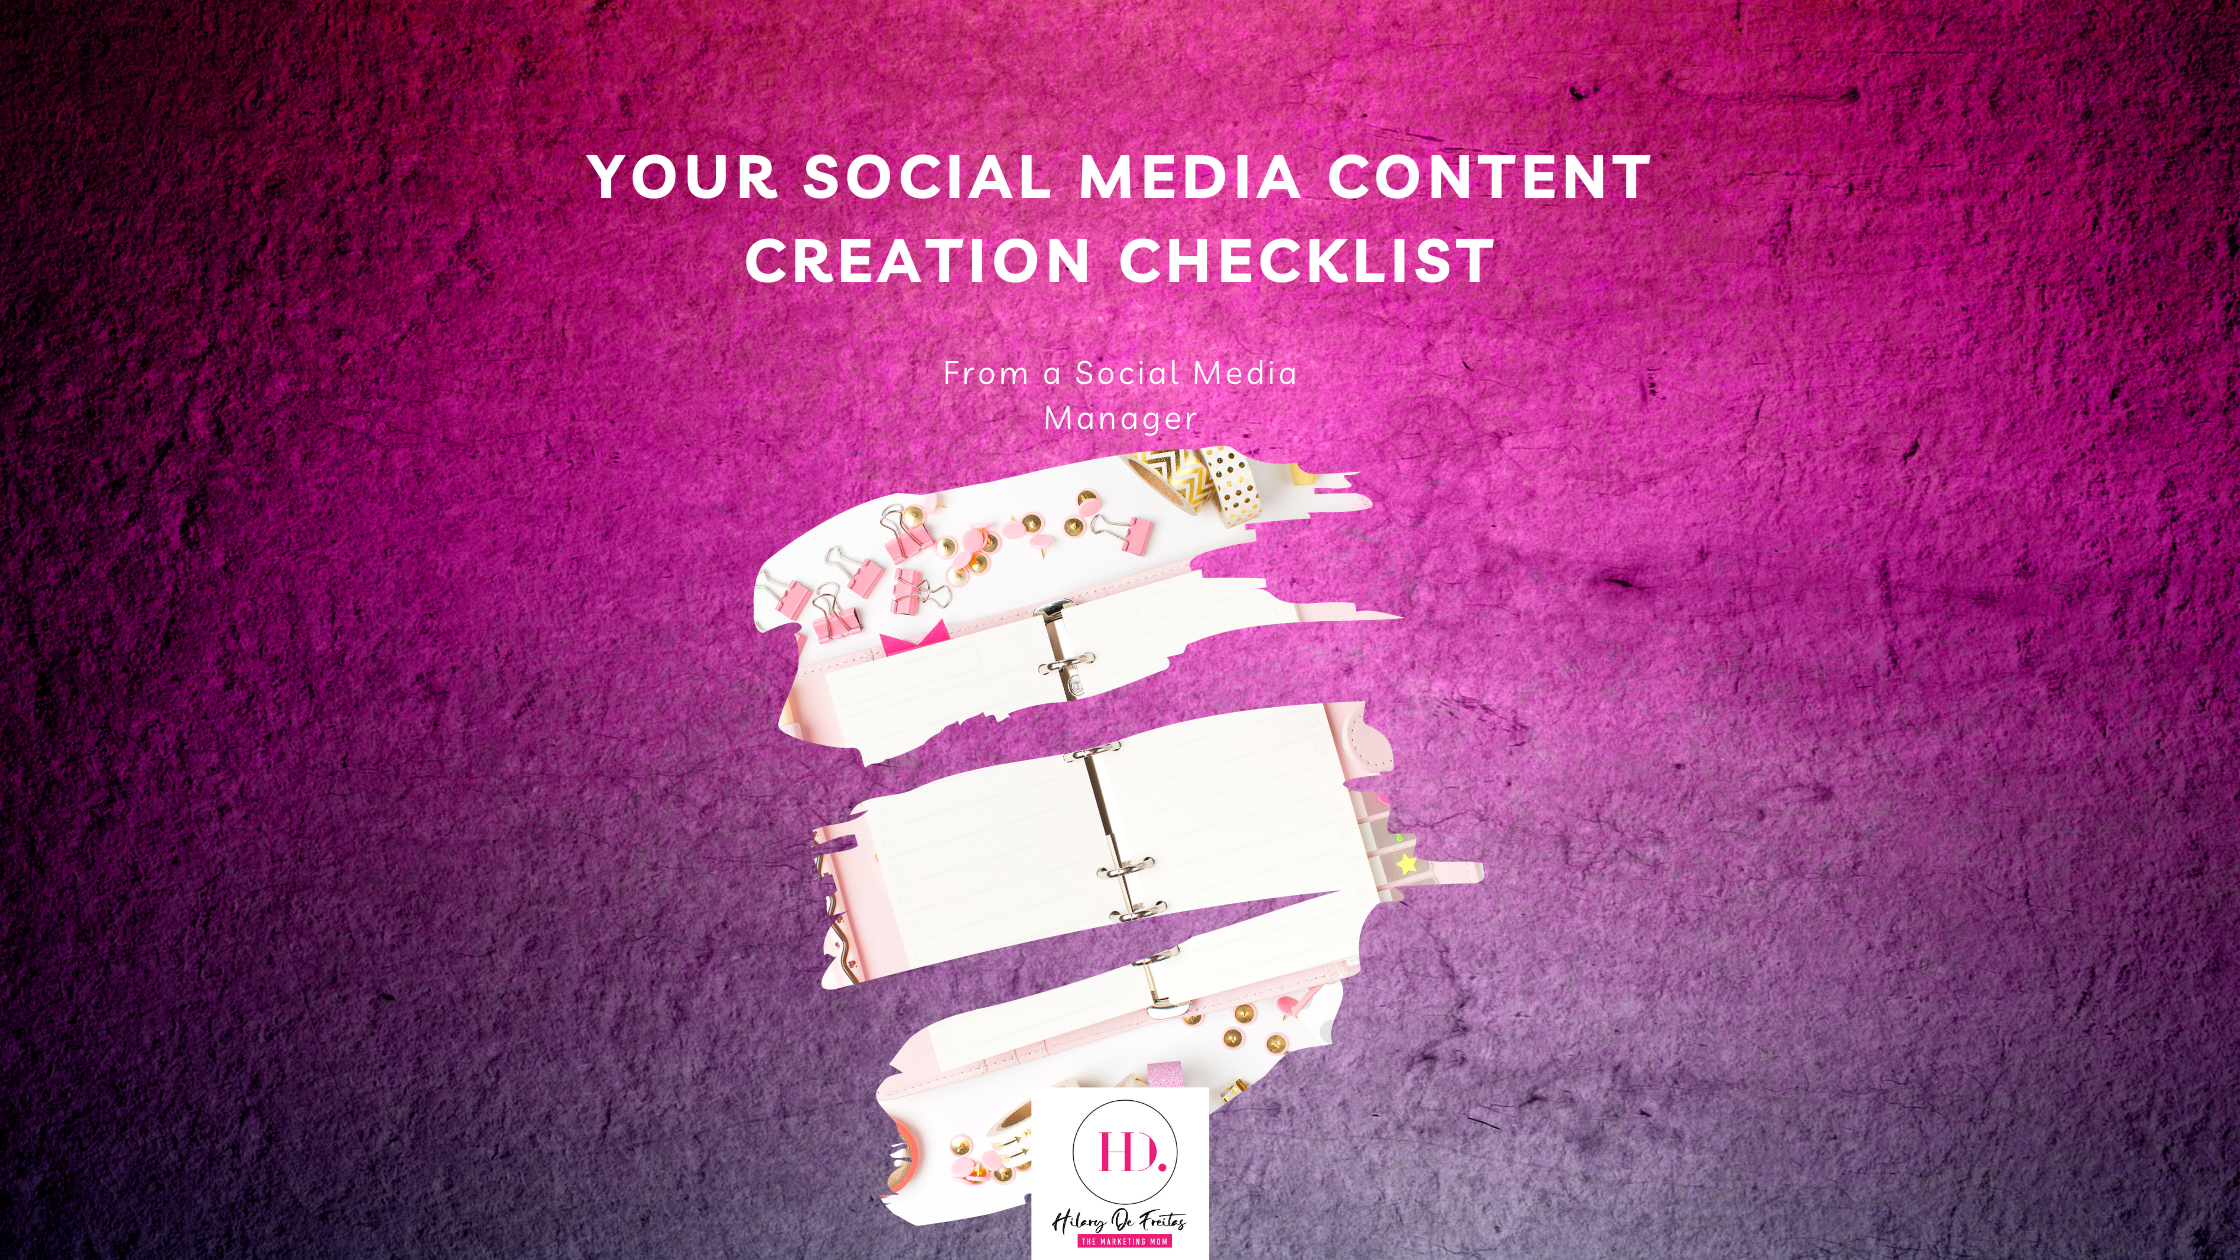 Social Media Content Creation Checklist